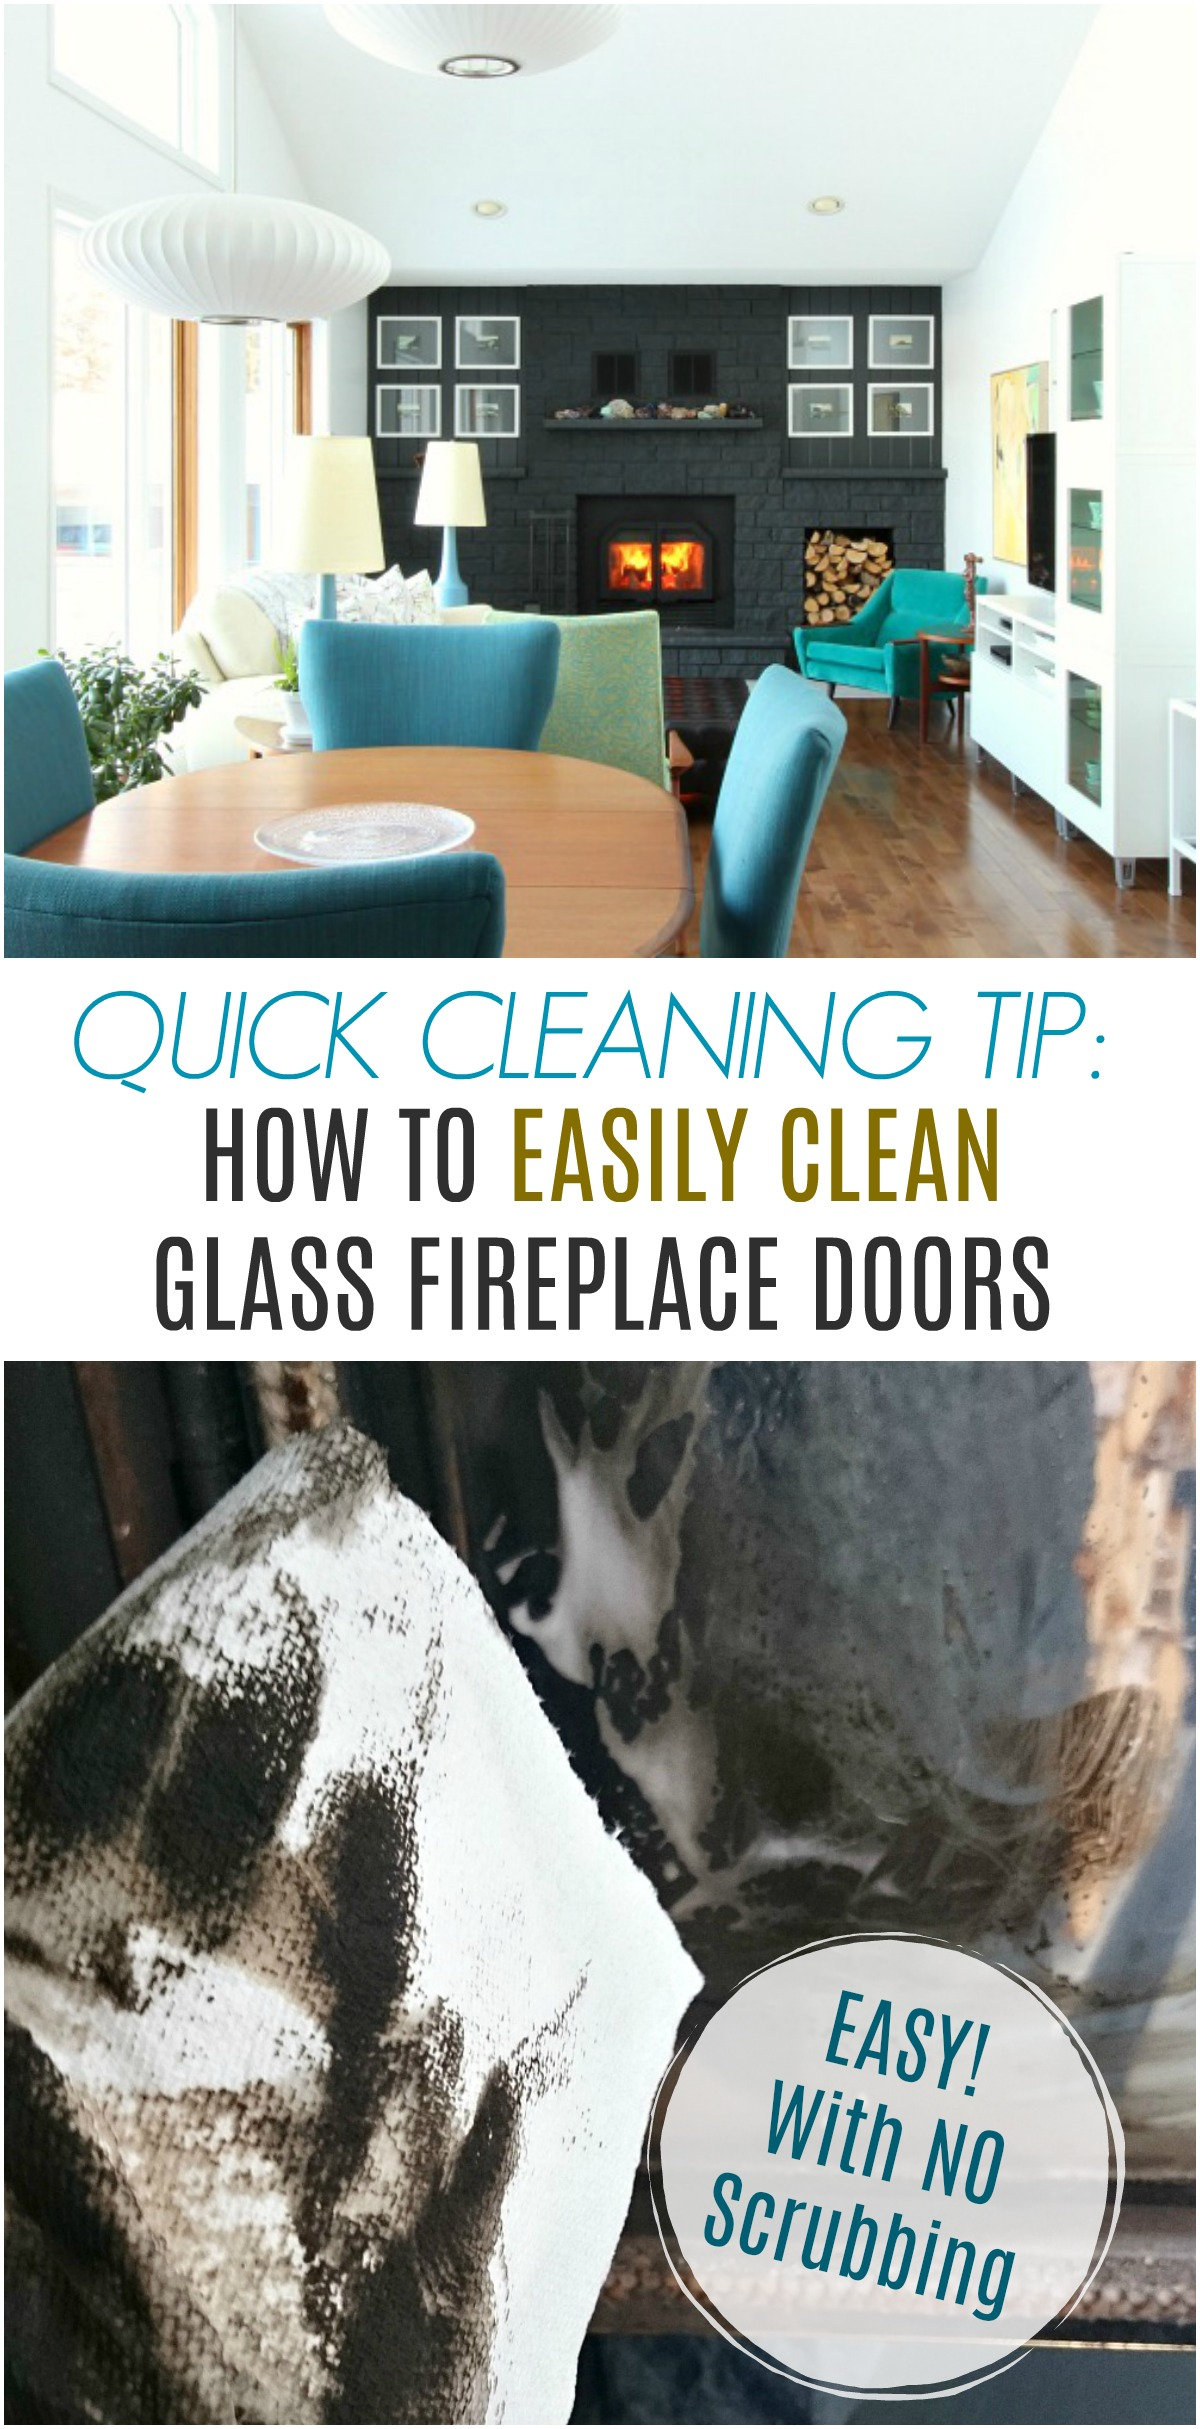 Learn how to clean glass fireplace doors - easily, with no scrubbing or effort. There's a product that makes this effortless and it's a versatile glass cleaner. #cleaningtips #cleanfireplace #fireplacecleaning